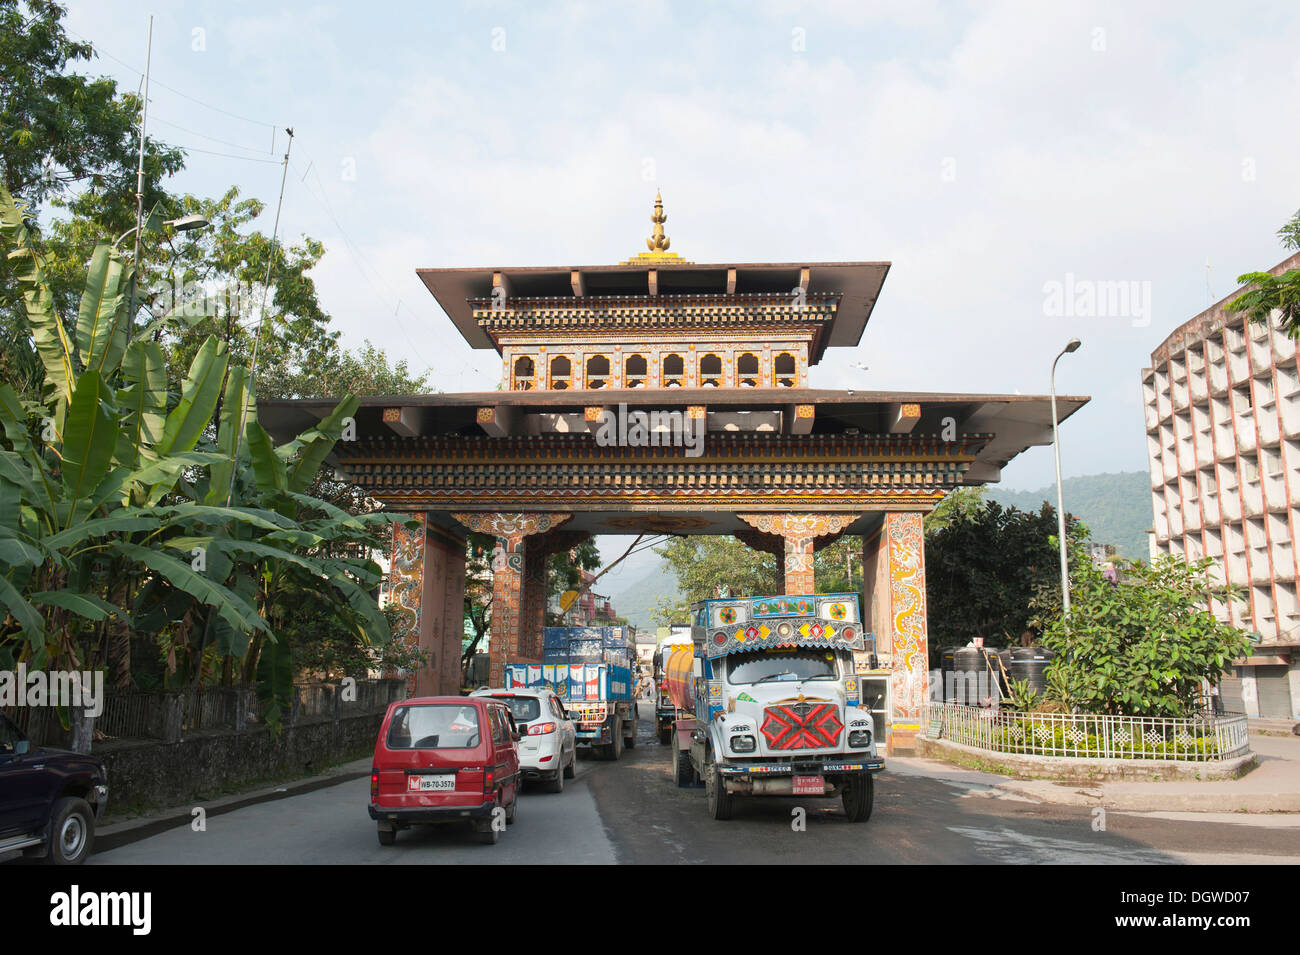 Traffic through Bhutan Gate, border, view from the Bhutan side, Jaigaon in India, Phuentsholing, Kingdom of Bhutan, South Asia - Stock Image